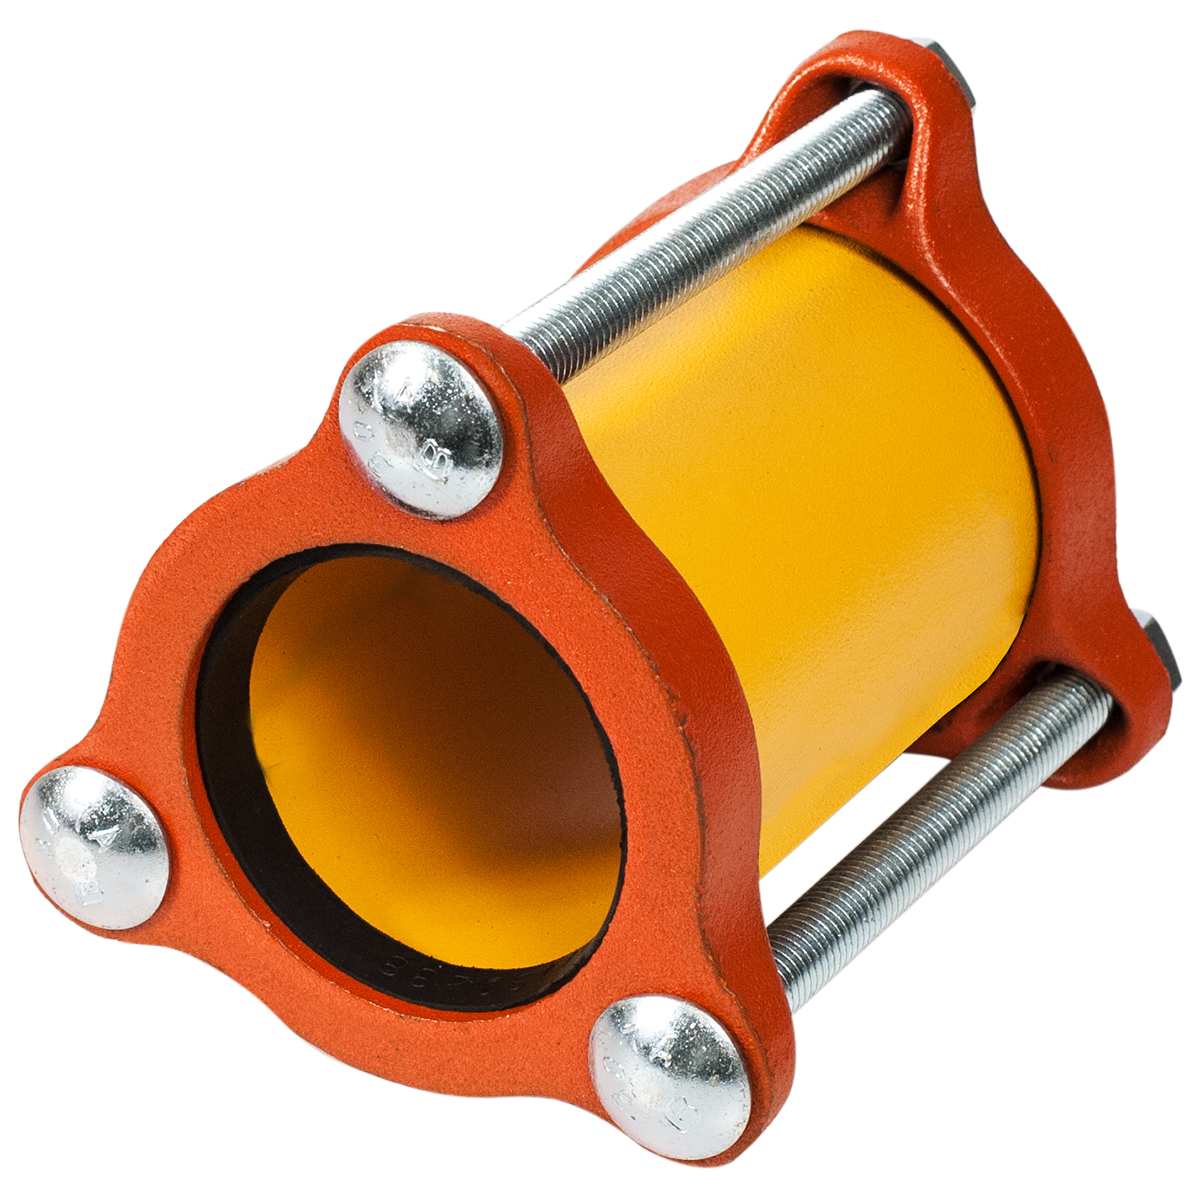 511 - Lightweight ductile iron coupling.Nominal Sizes1/2 - 12 inchesWorking PressureUp to 200 psiPipe CompatibilitySteel, copper and PVC pipe